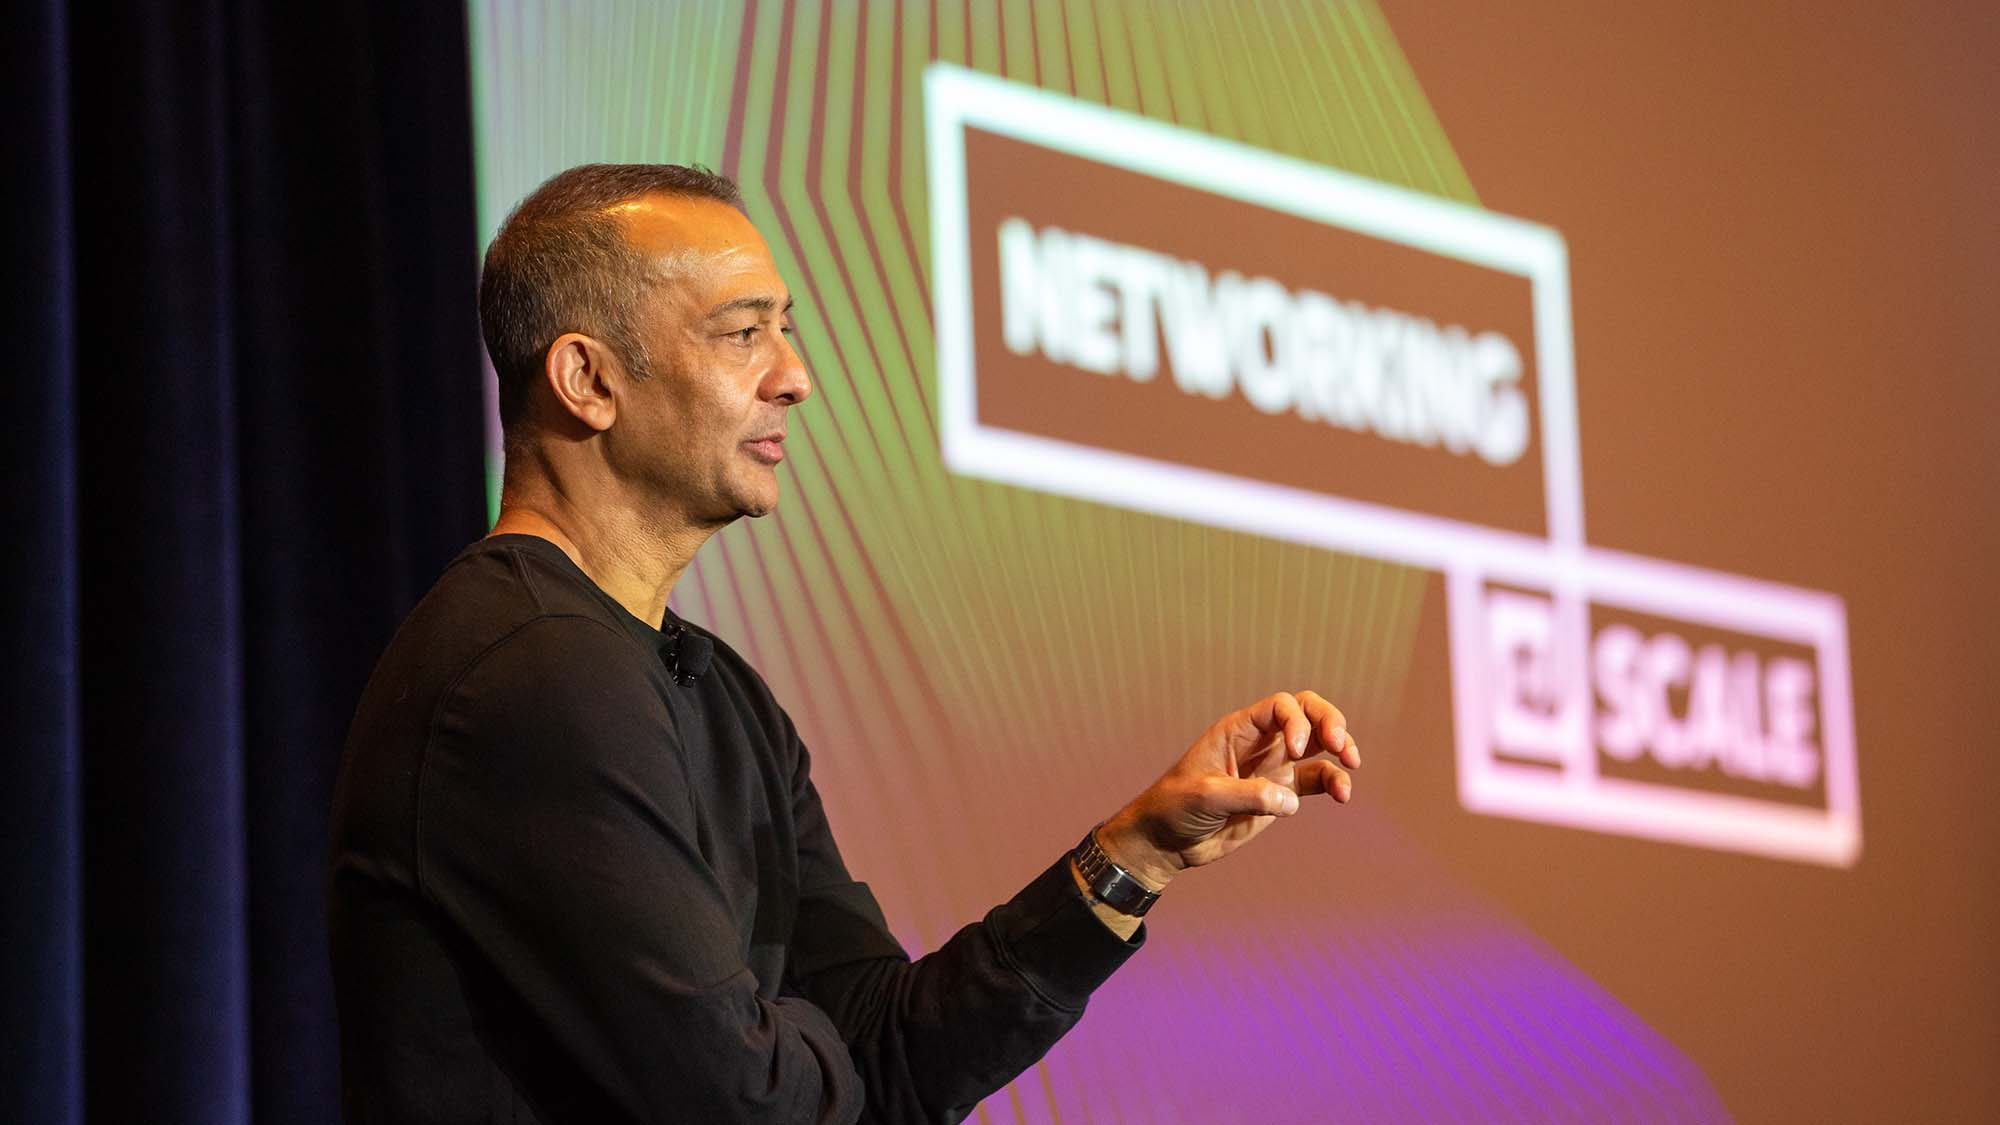 Watch all the talks from Networking @Scale 2019 in Boston, including a keynote by Najam Ahmad of Facebook.